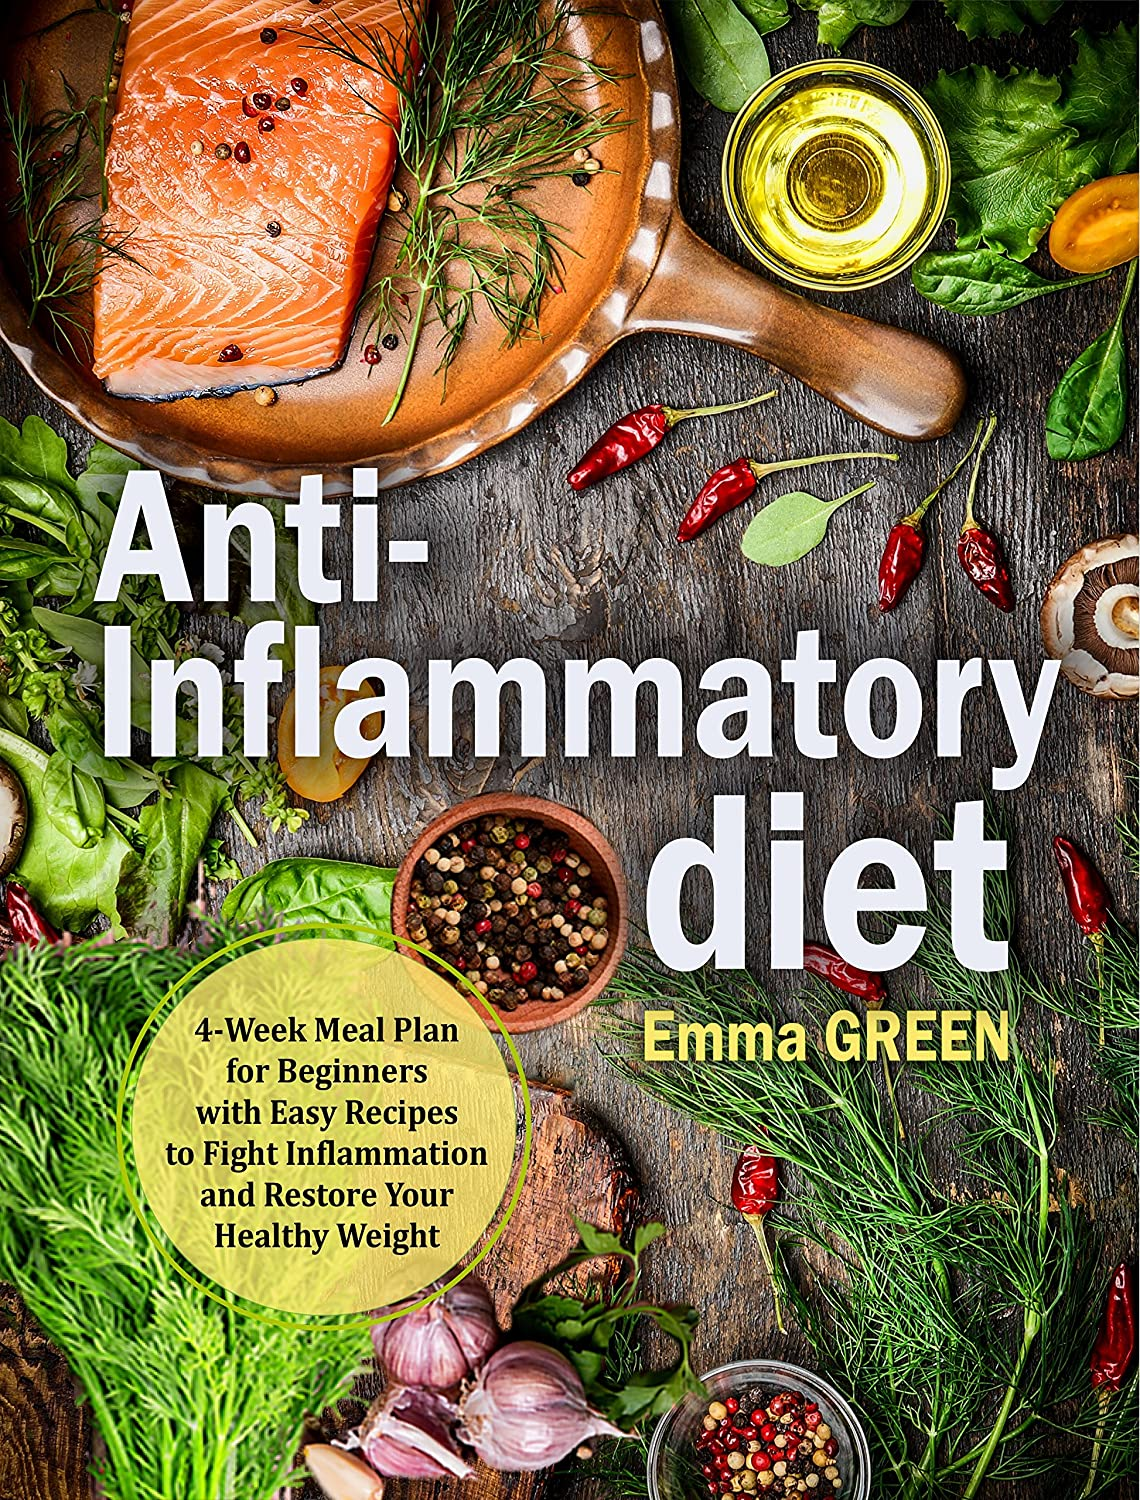 Anti Inflammatory Diet: 4-Week Meal Plan for Beginners with Easy Recipes to Fight Inflammation and Restore Your Healthy Weight (English Edition)